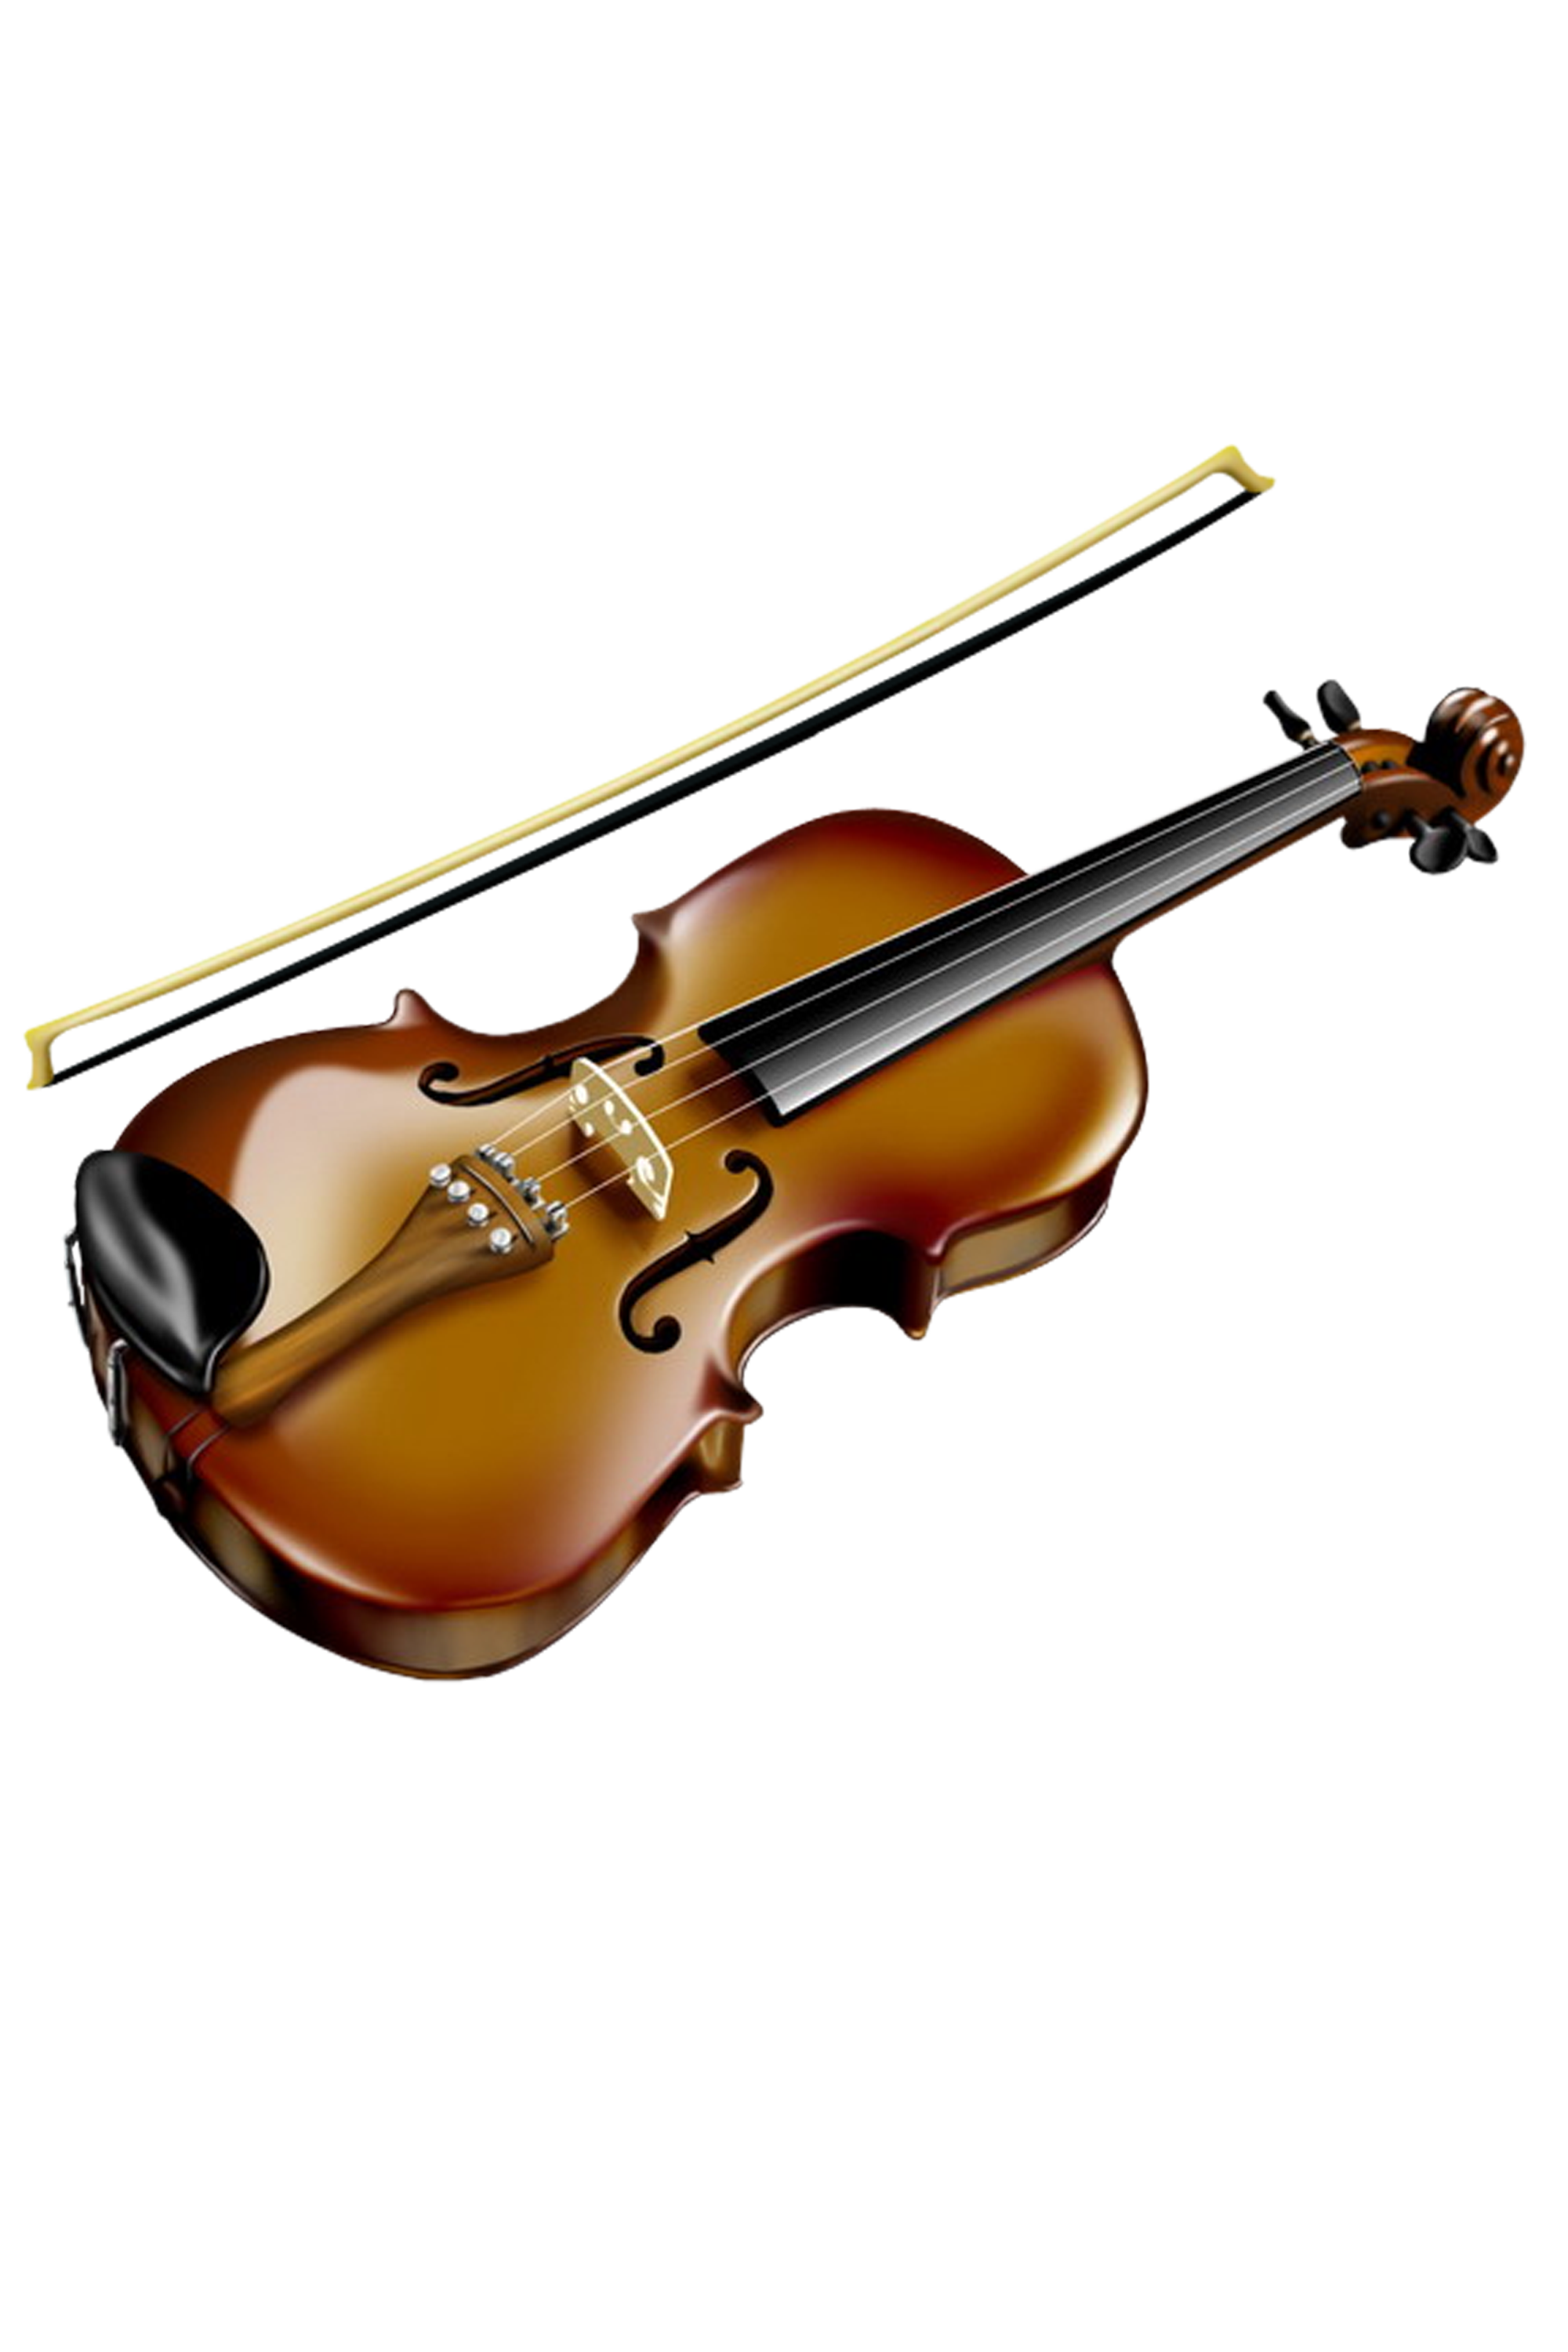 download violin clipart hq png image freepngimg rh freepngimg com violin clip art for kids violin clipart free